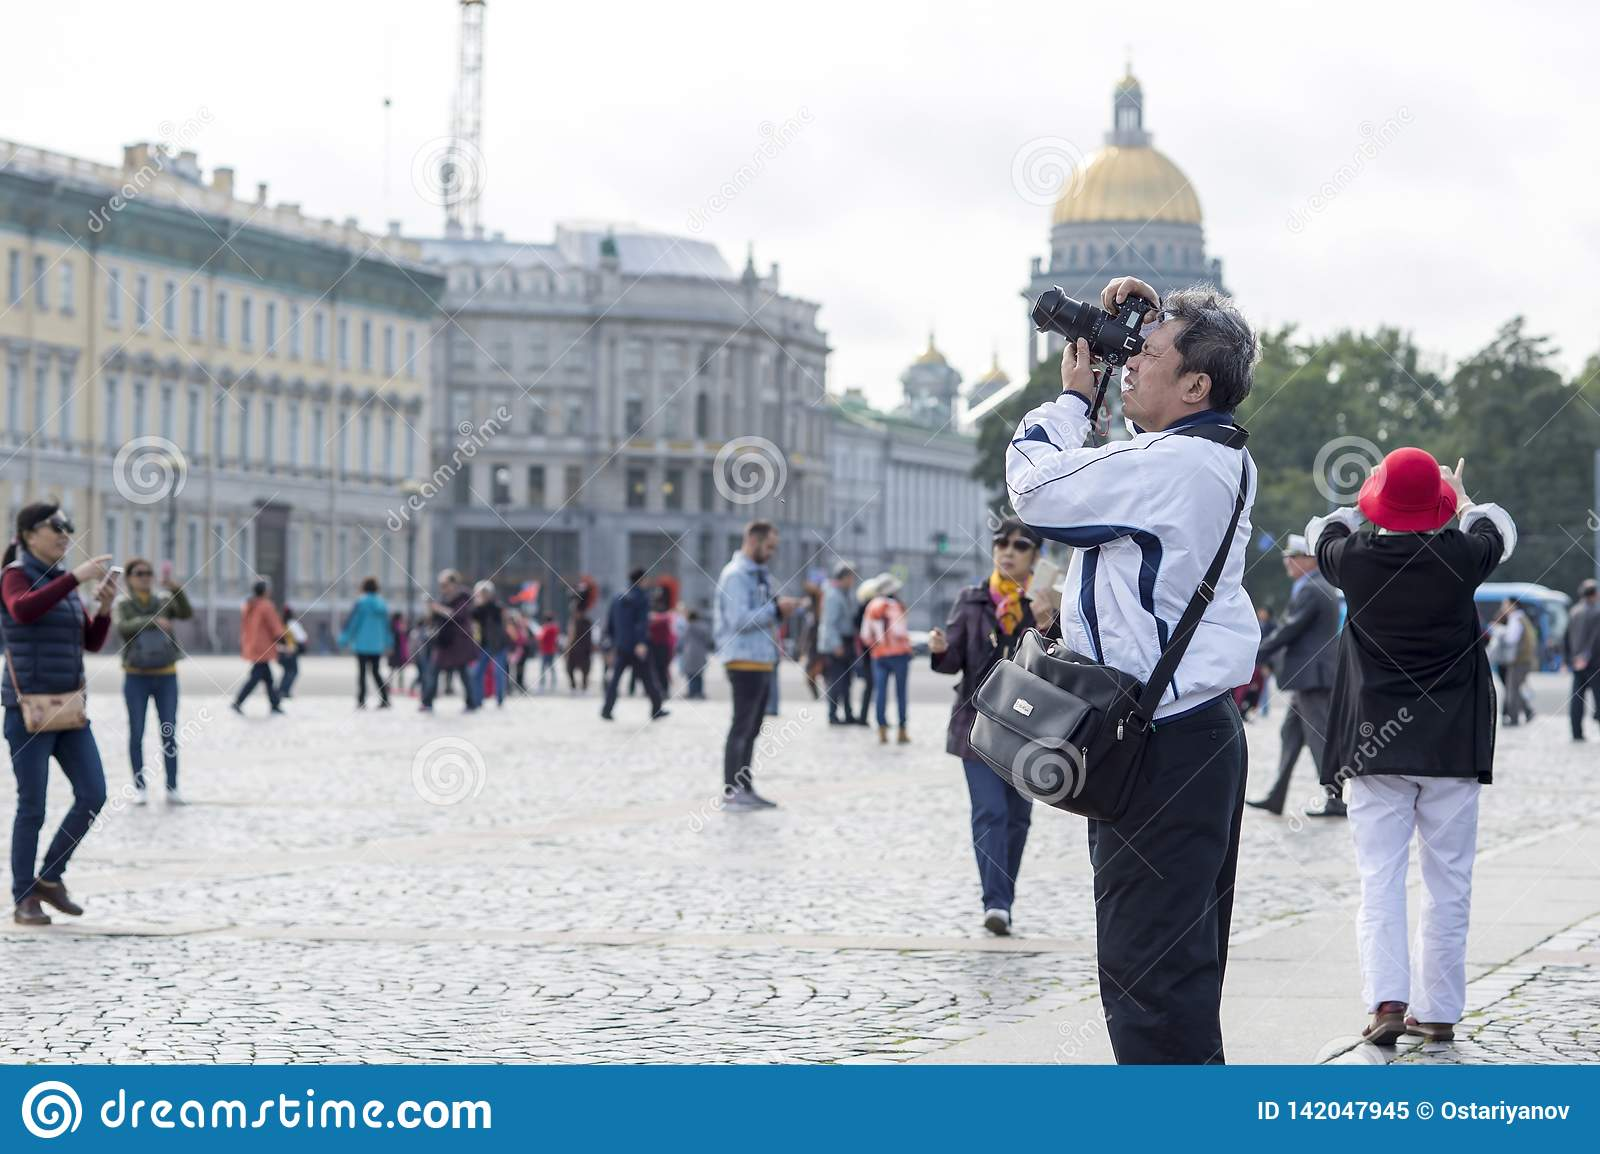 Man tourist Asian appearance photographs on camera attractions on the Palace square of St. Petersburg, Russia, September 2018.